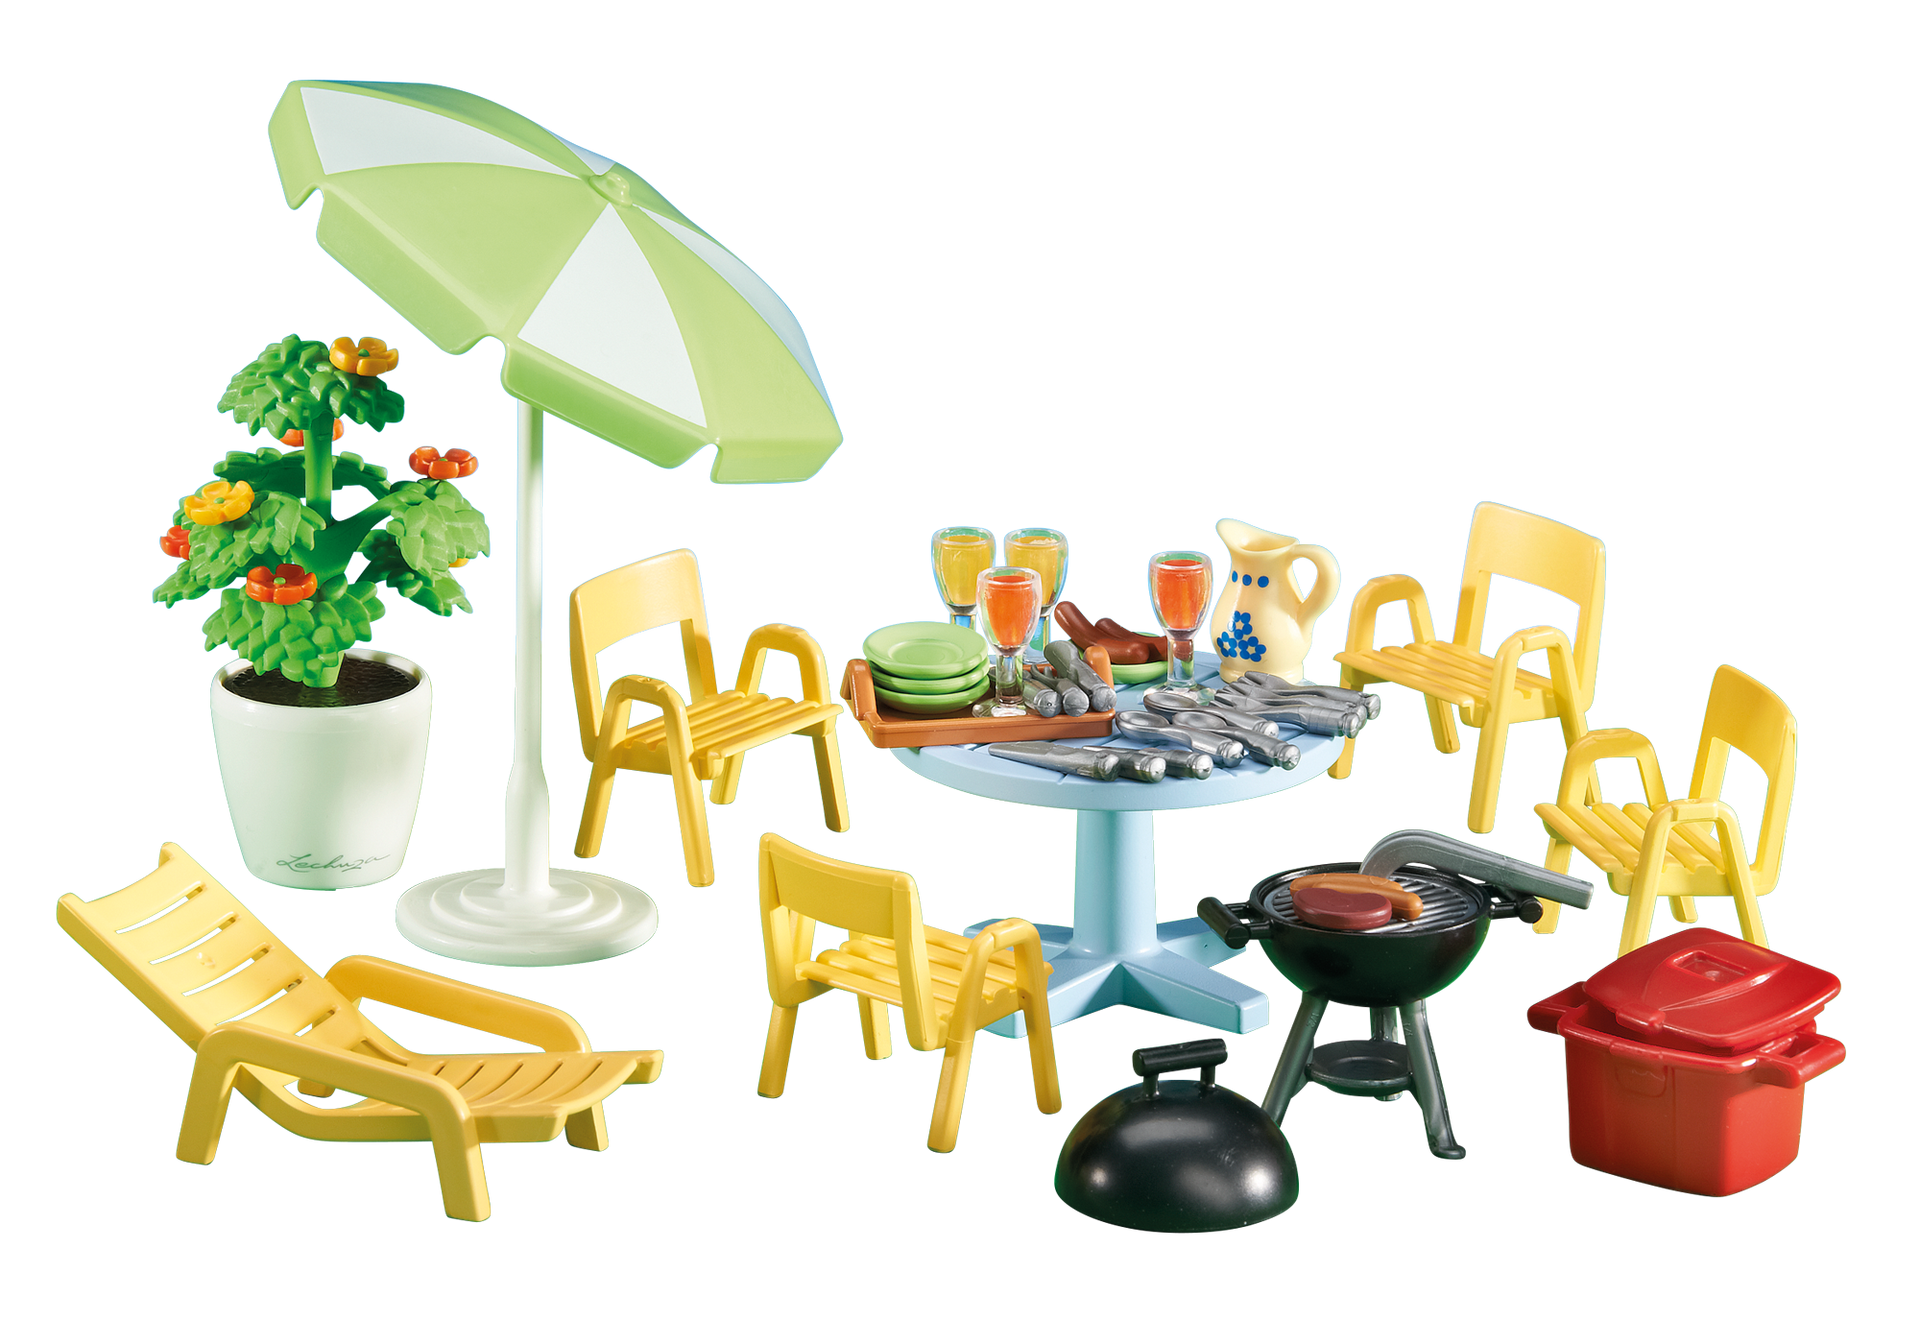 Am nagement pour jardin 6451 playmobil france for Set de table transparent